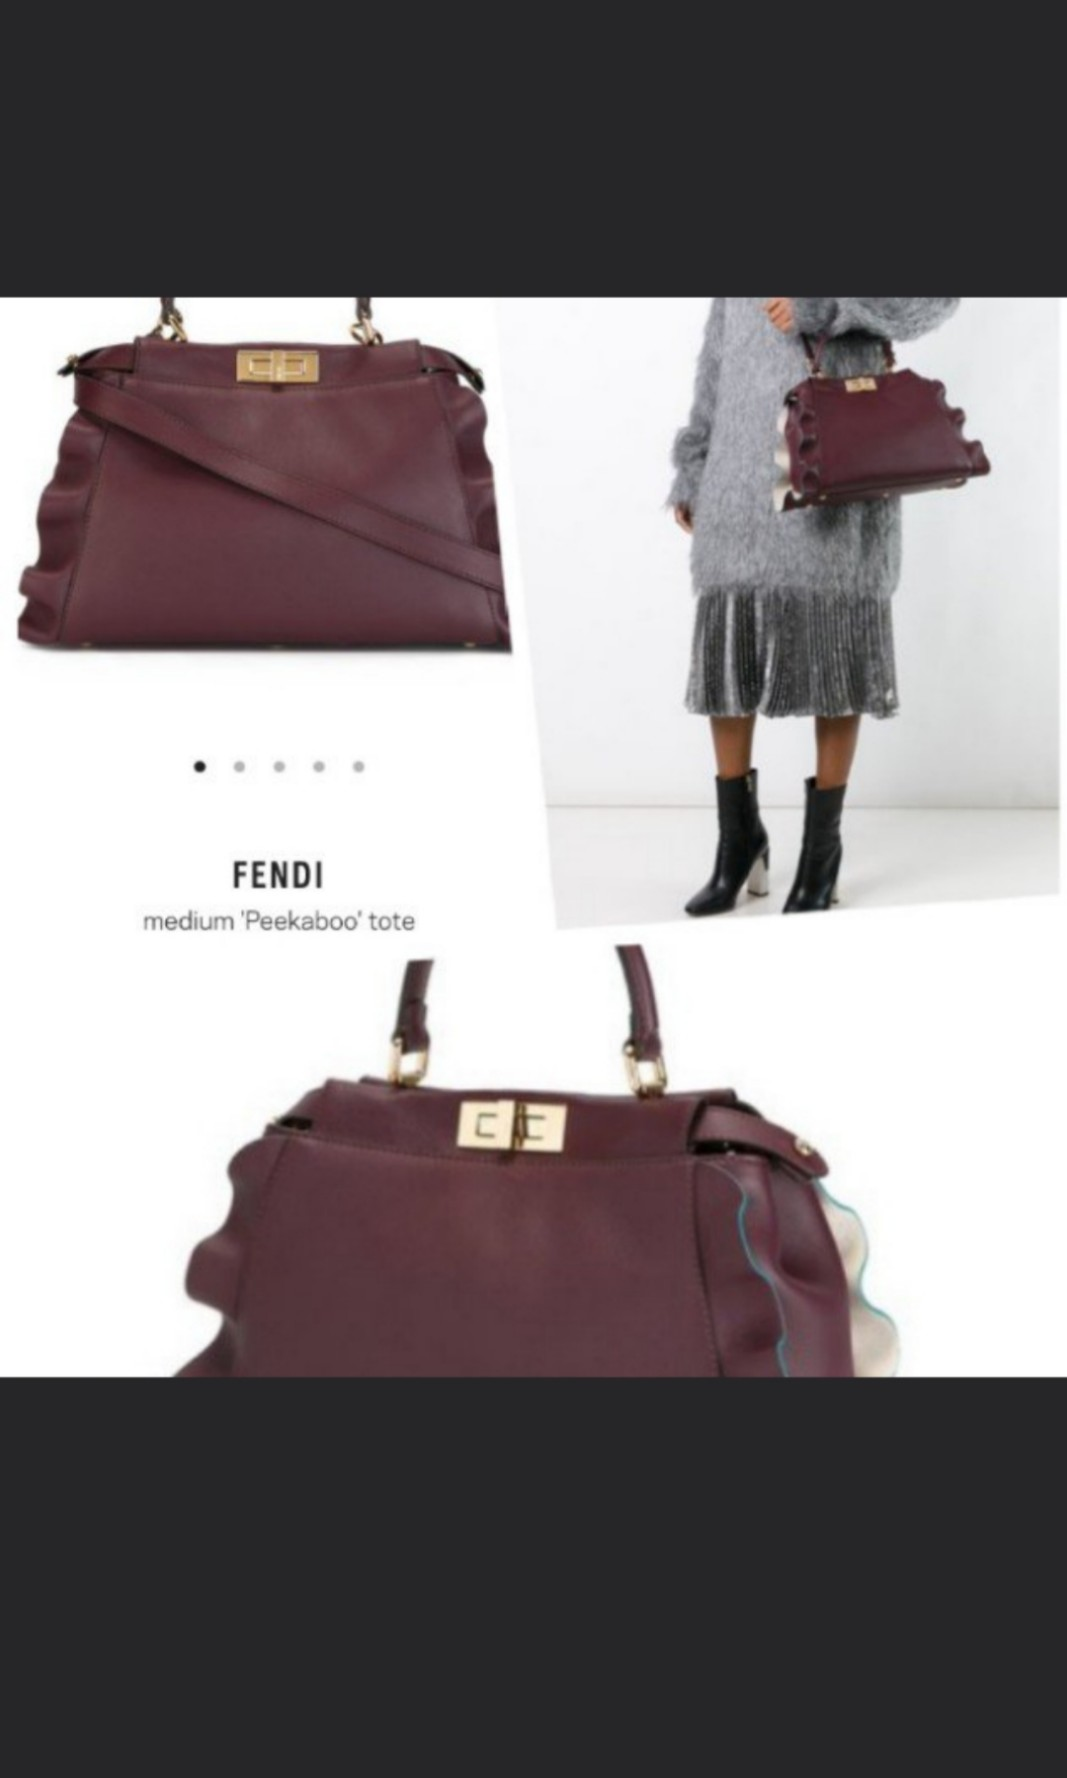 a25f3f009201 Fendi peekaboo leather tote bag